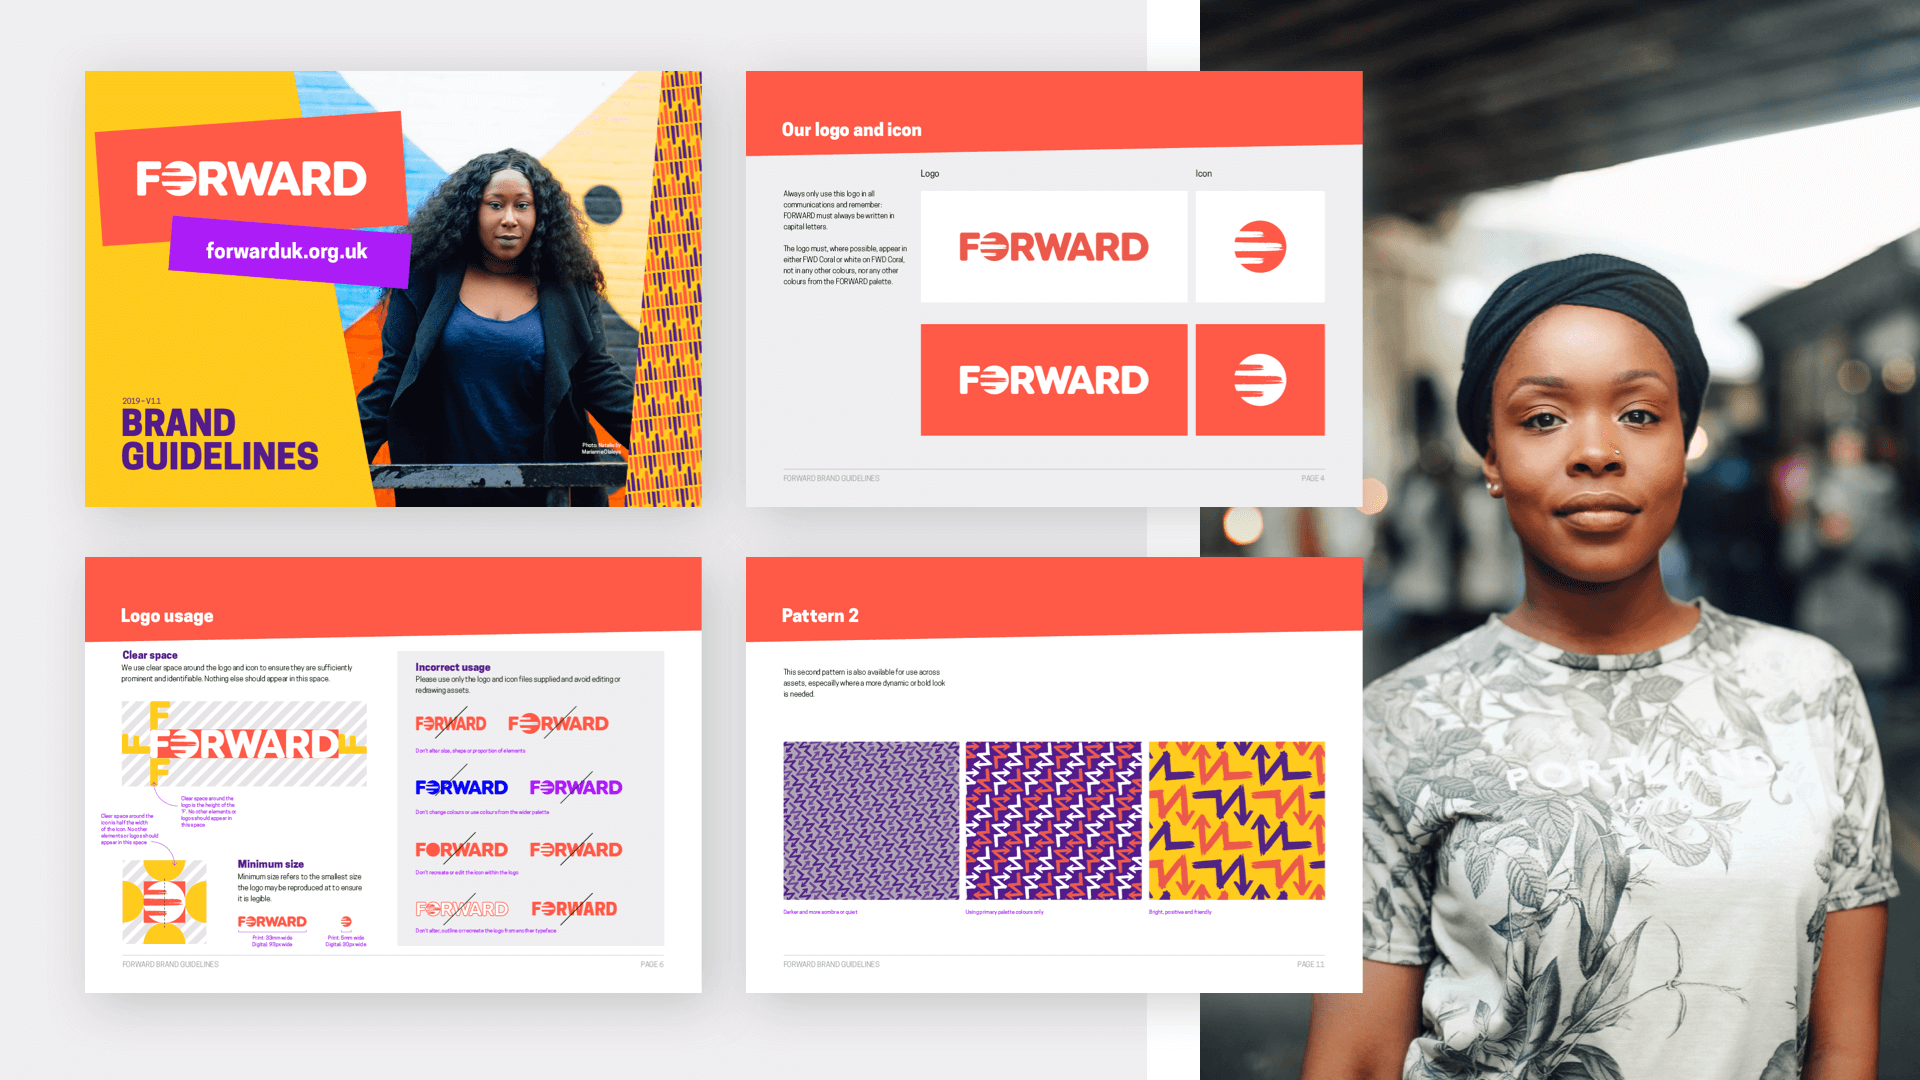 FORWARD new brand guidelines showcasing logos and patterns